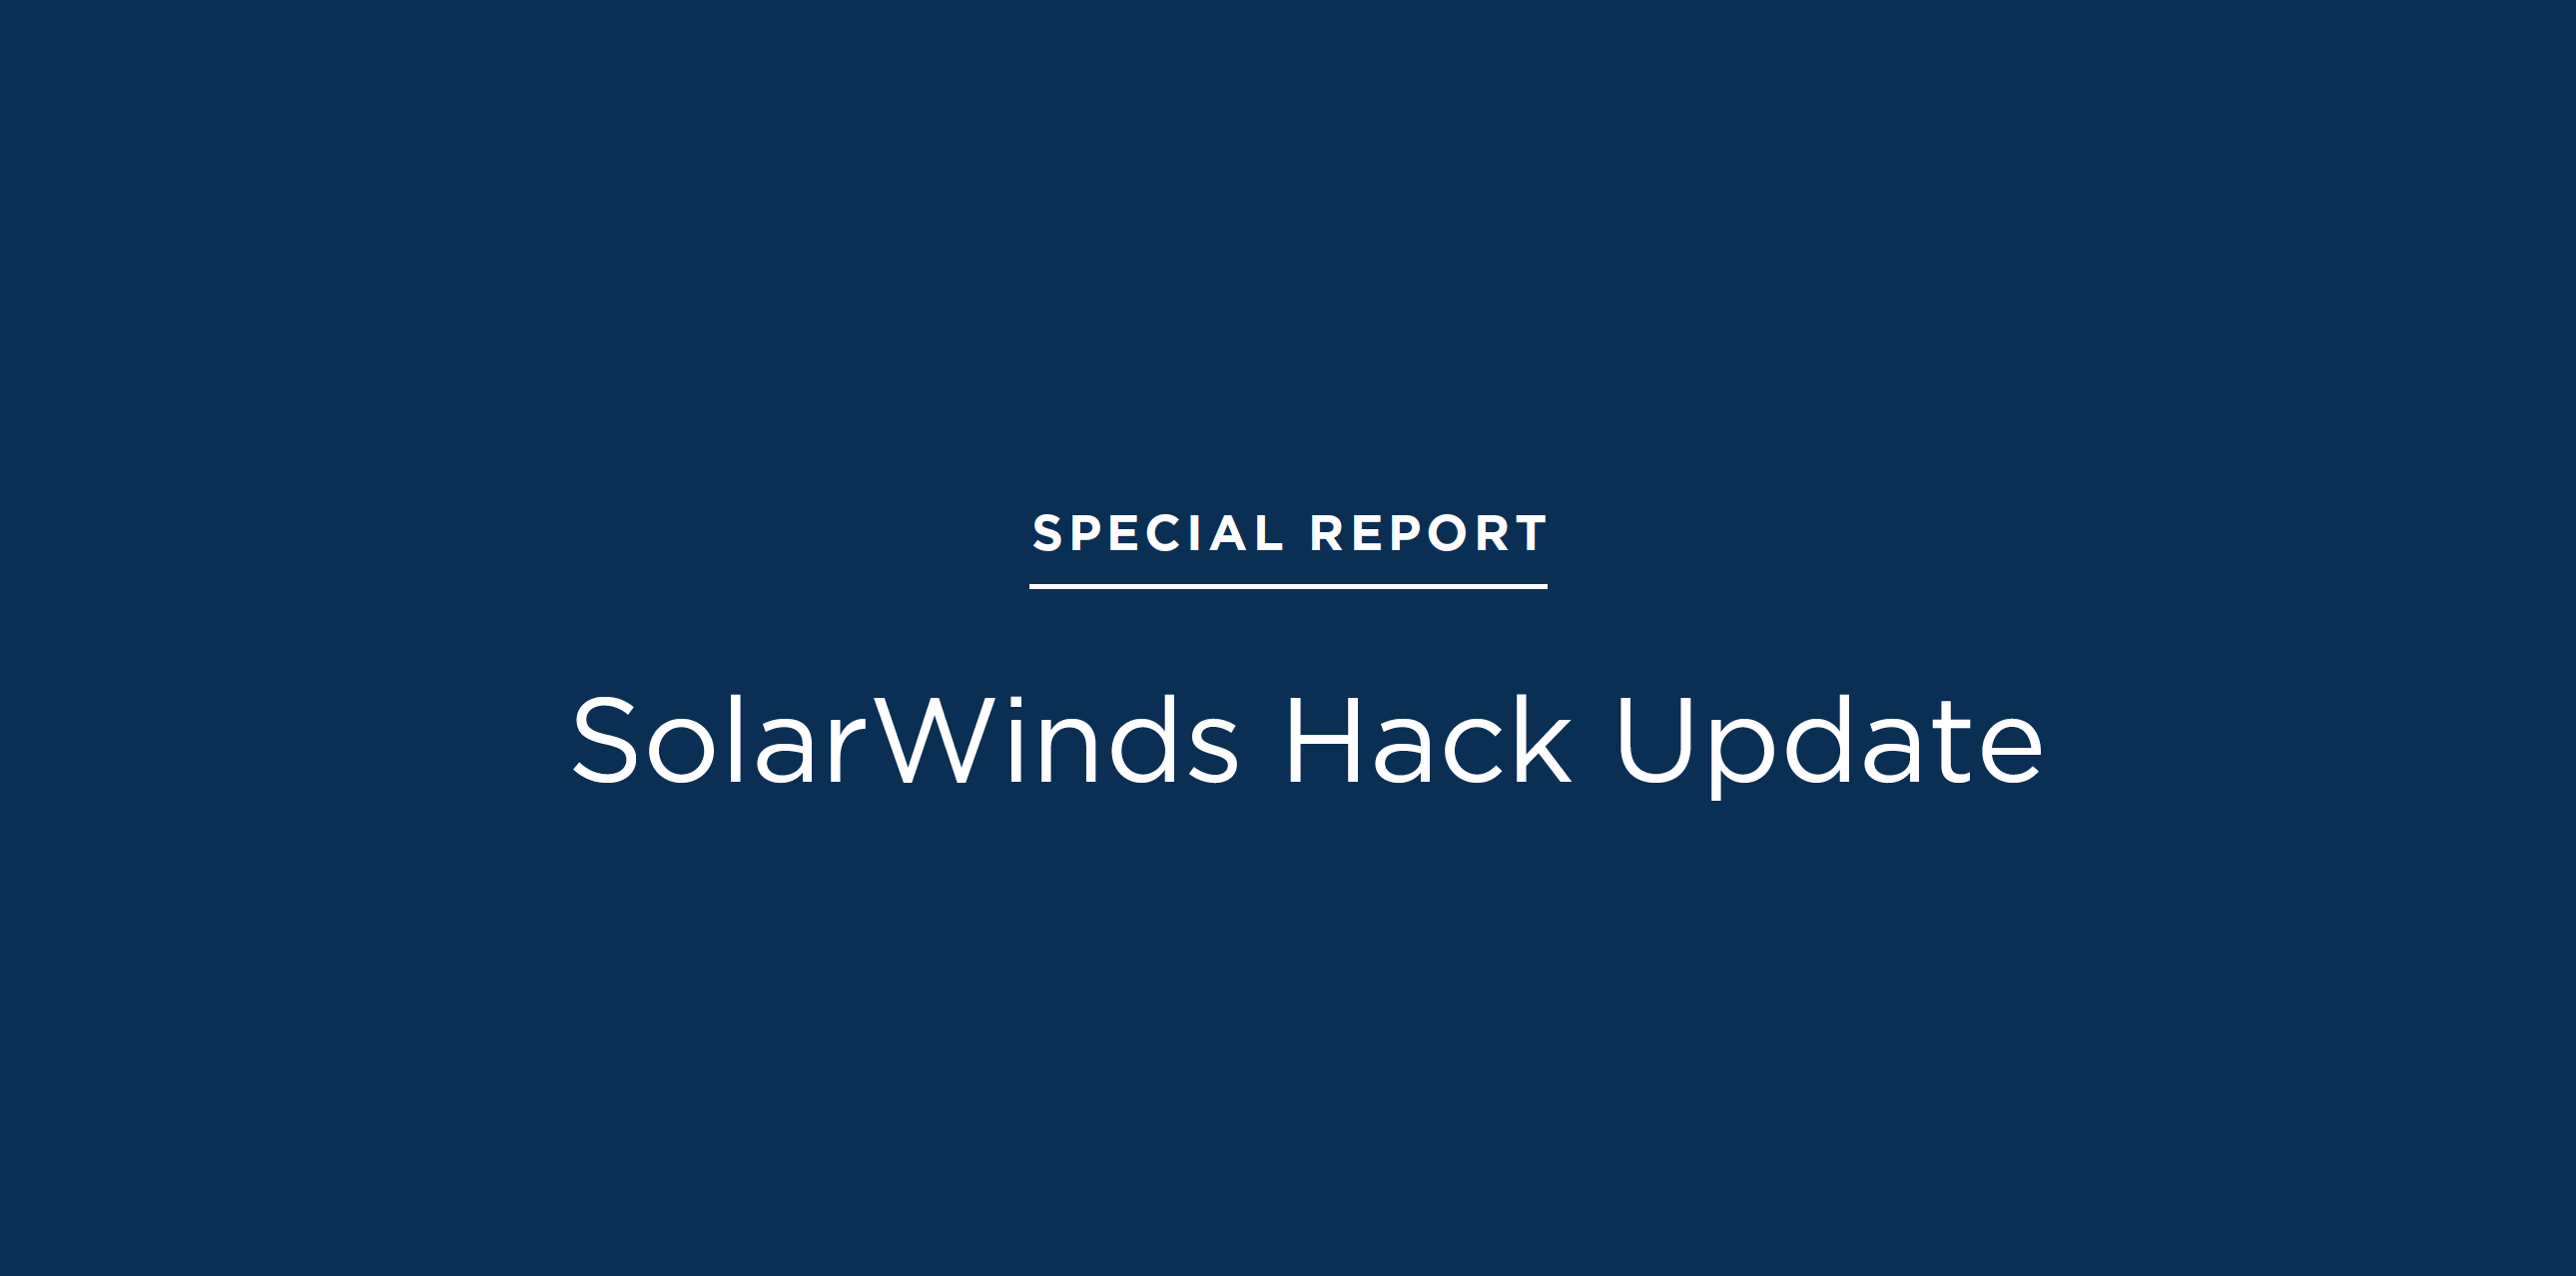 SolarWinds Hack Update